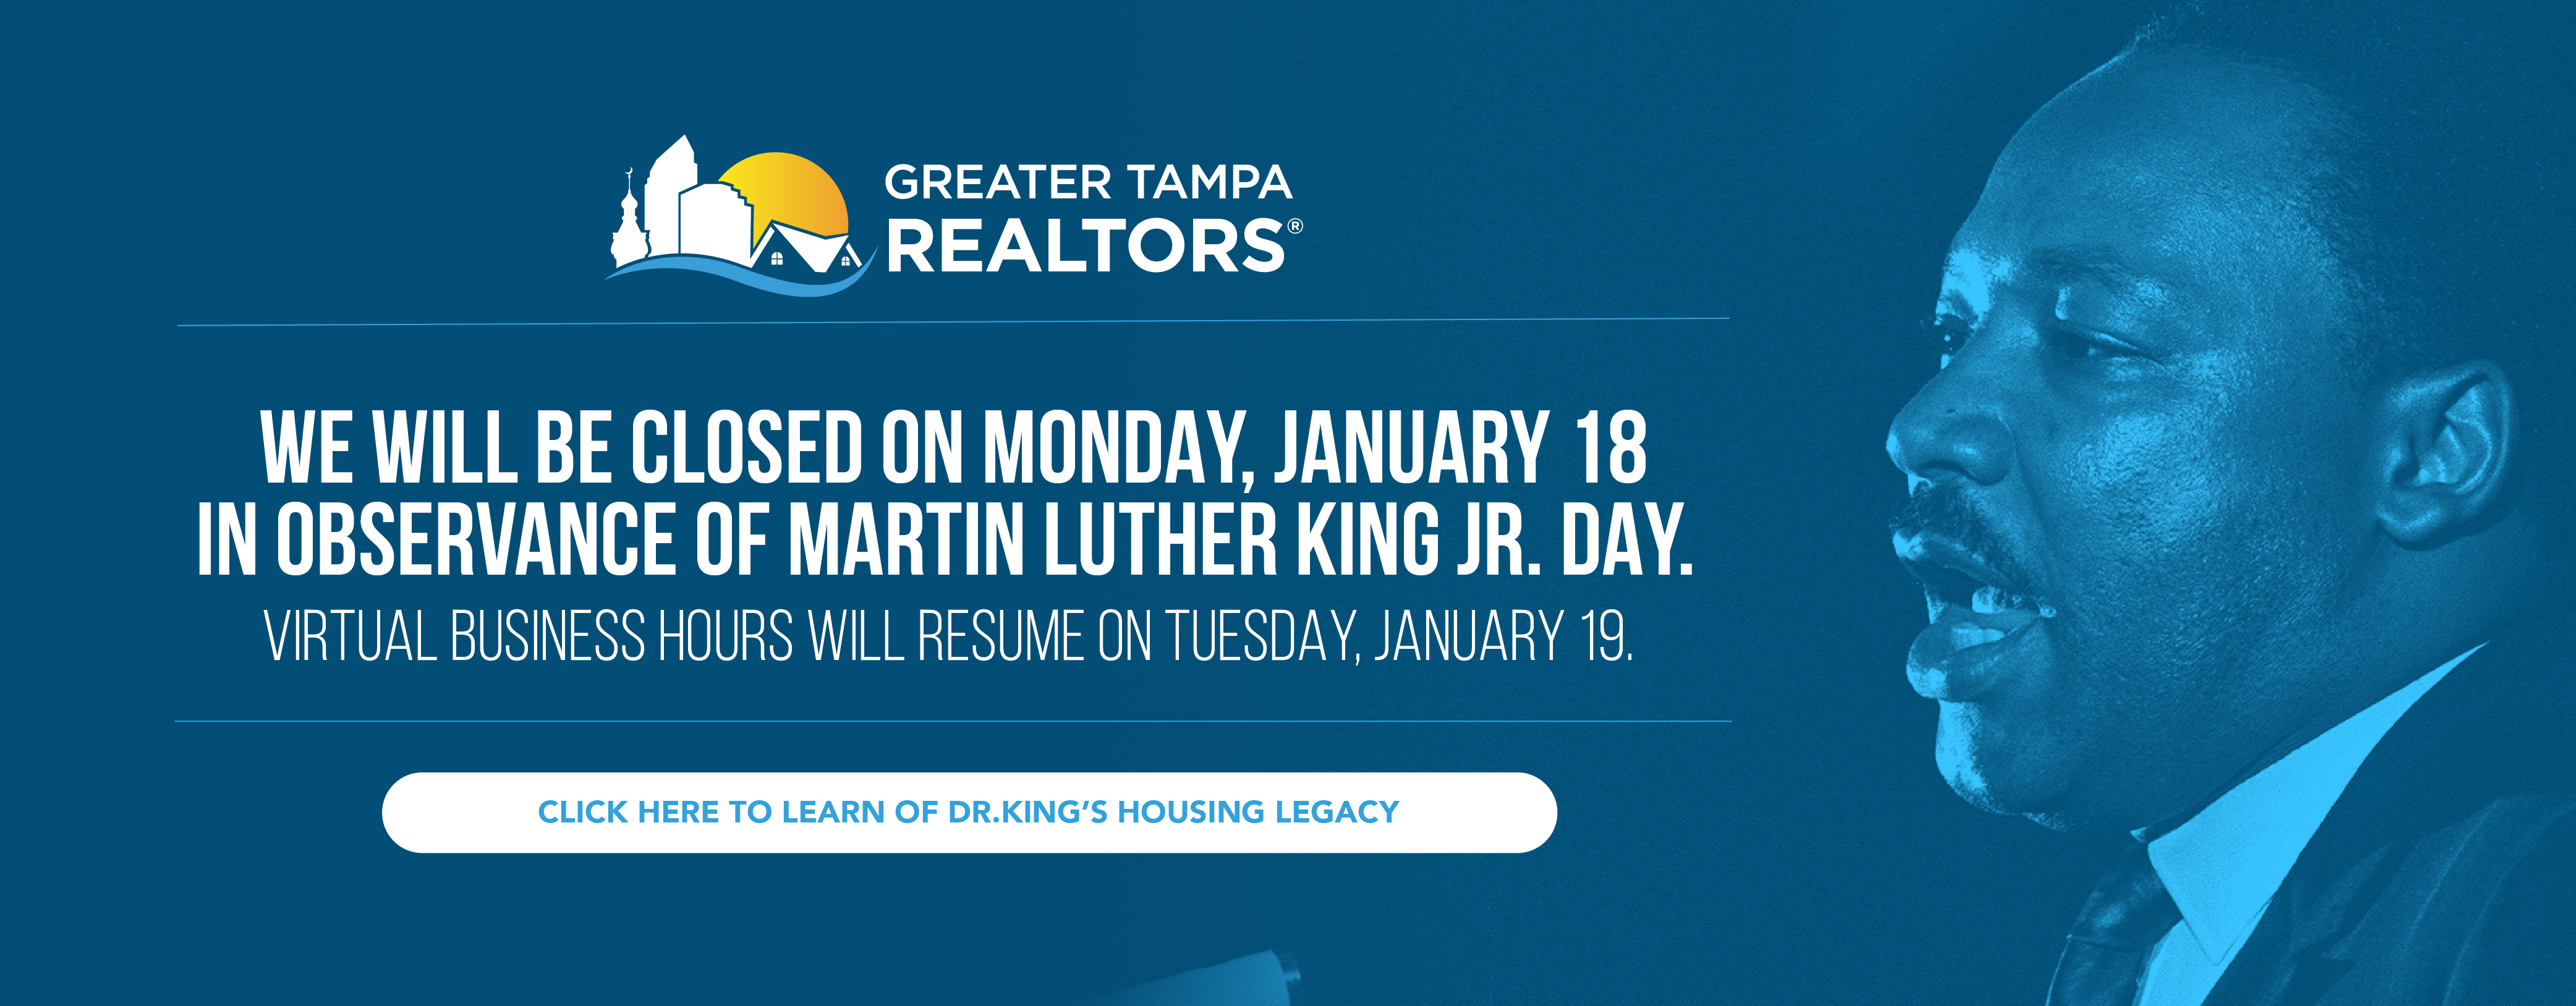 We will be closed on Monday, January 18 in observance of Martin Luther King Jr. Day. Virtual business hours will resume on Tuesday, January 19.